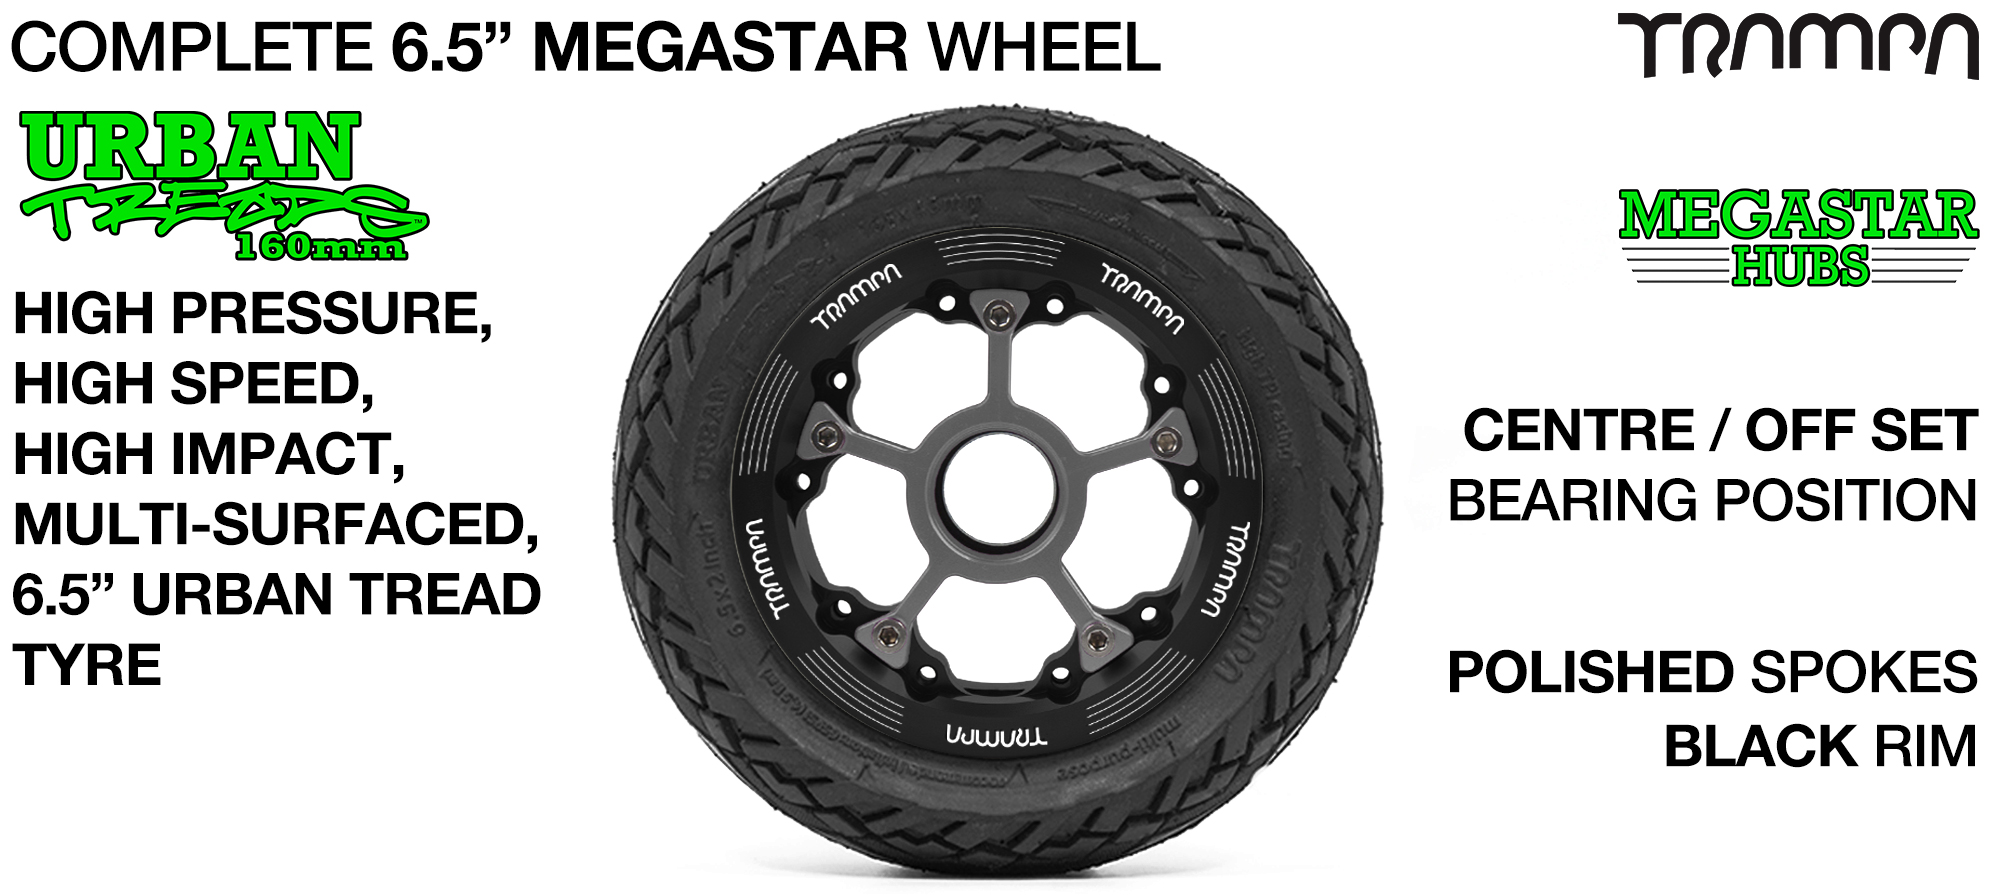 BLACK MEGASTAR Rims with POLISHED Spokes & the amazing Low Profile 6.5 Inch URBAN Treads Tyres